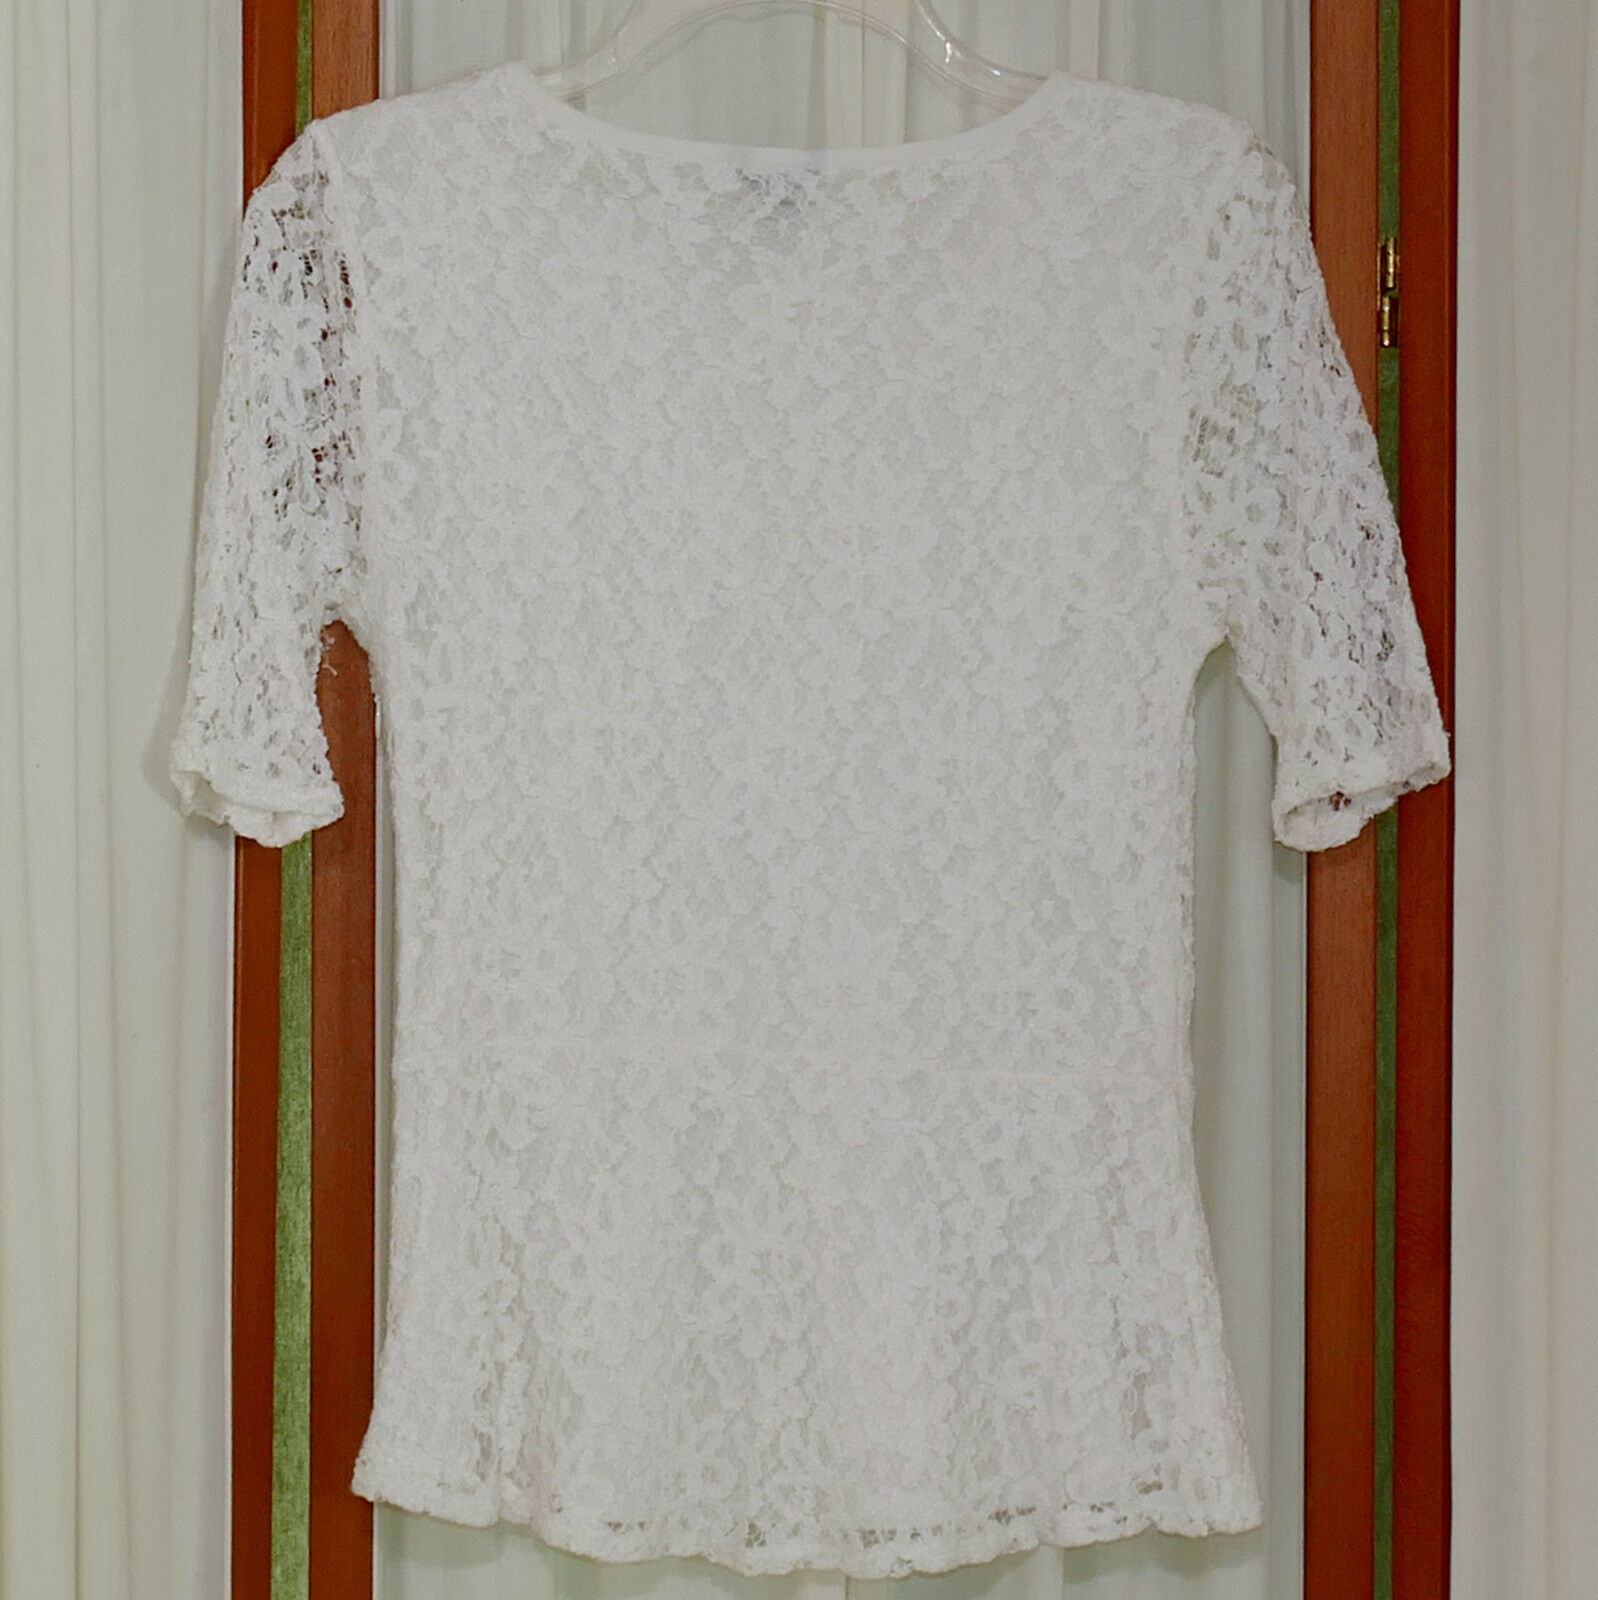 Women's Top ANN TAYLOR Re-Embroidered Lace SS RN PO Size Zip Bright White S